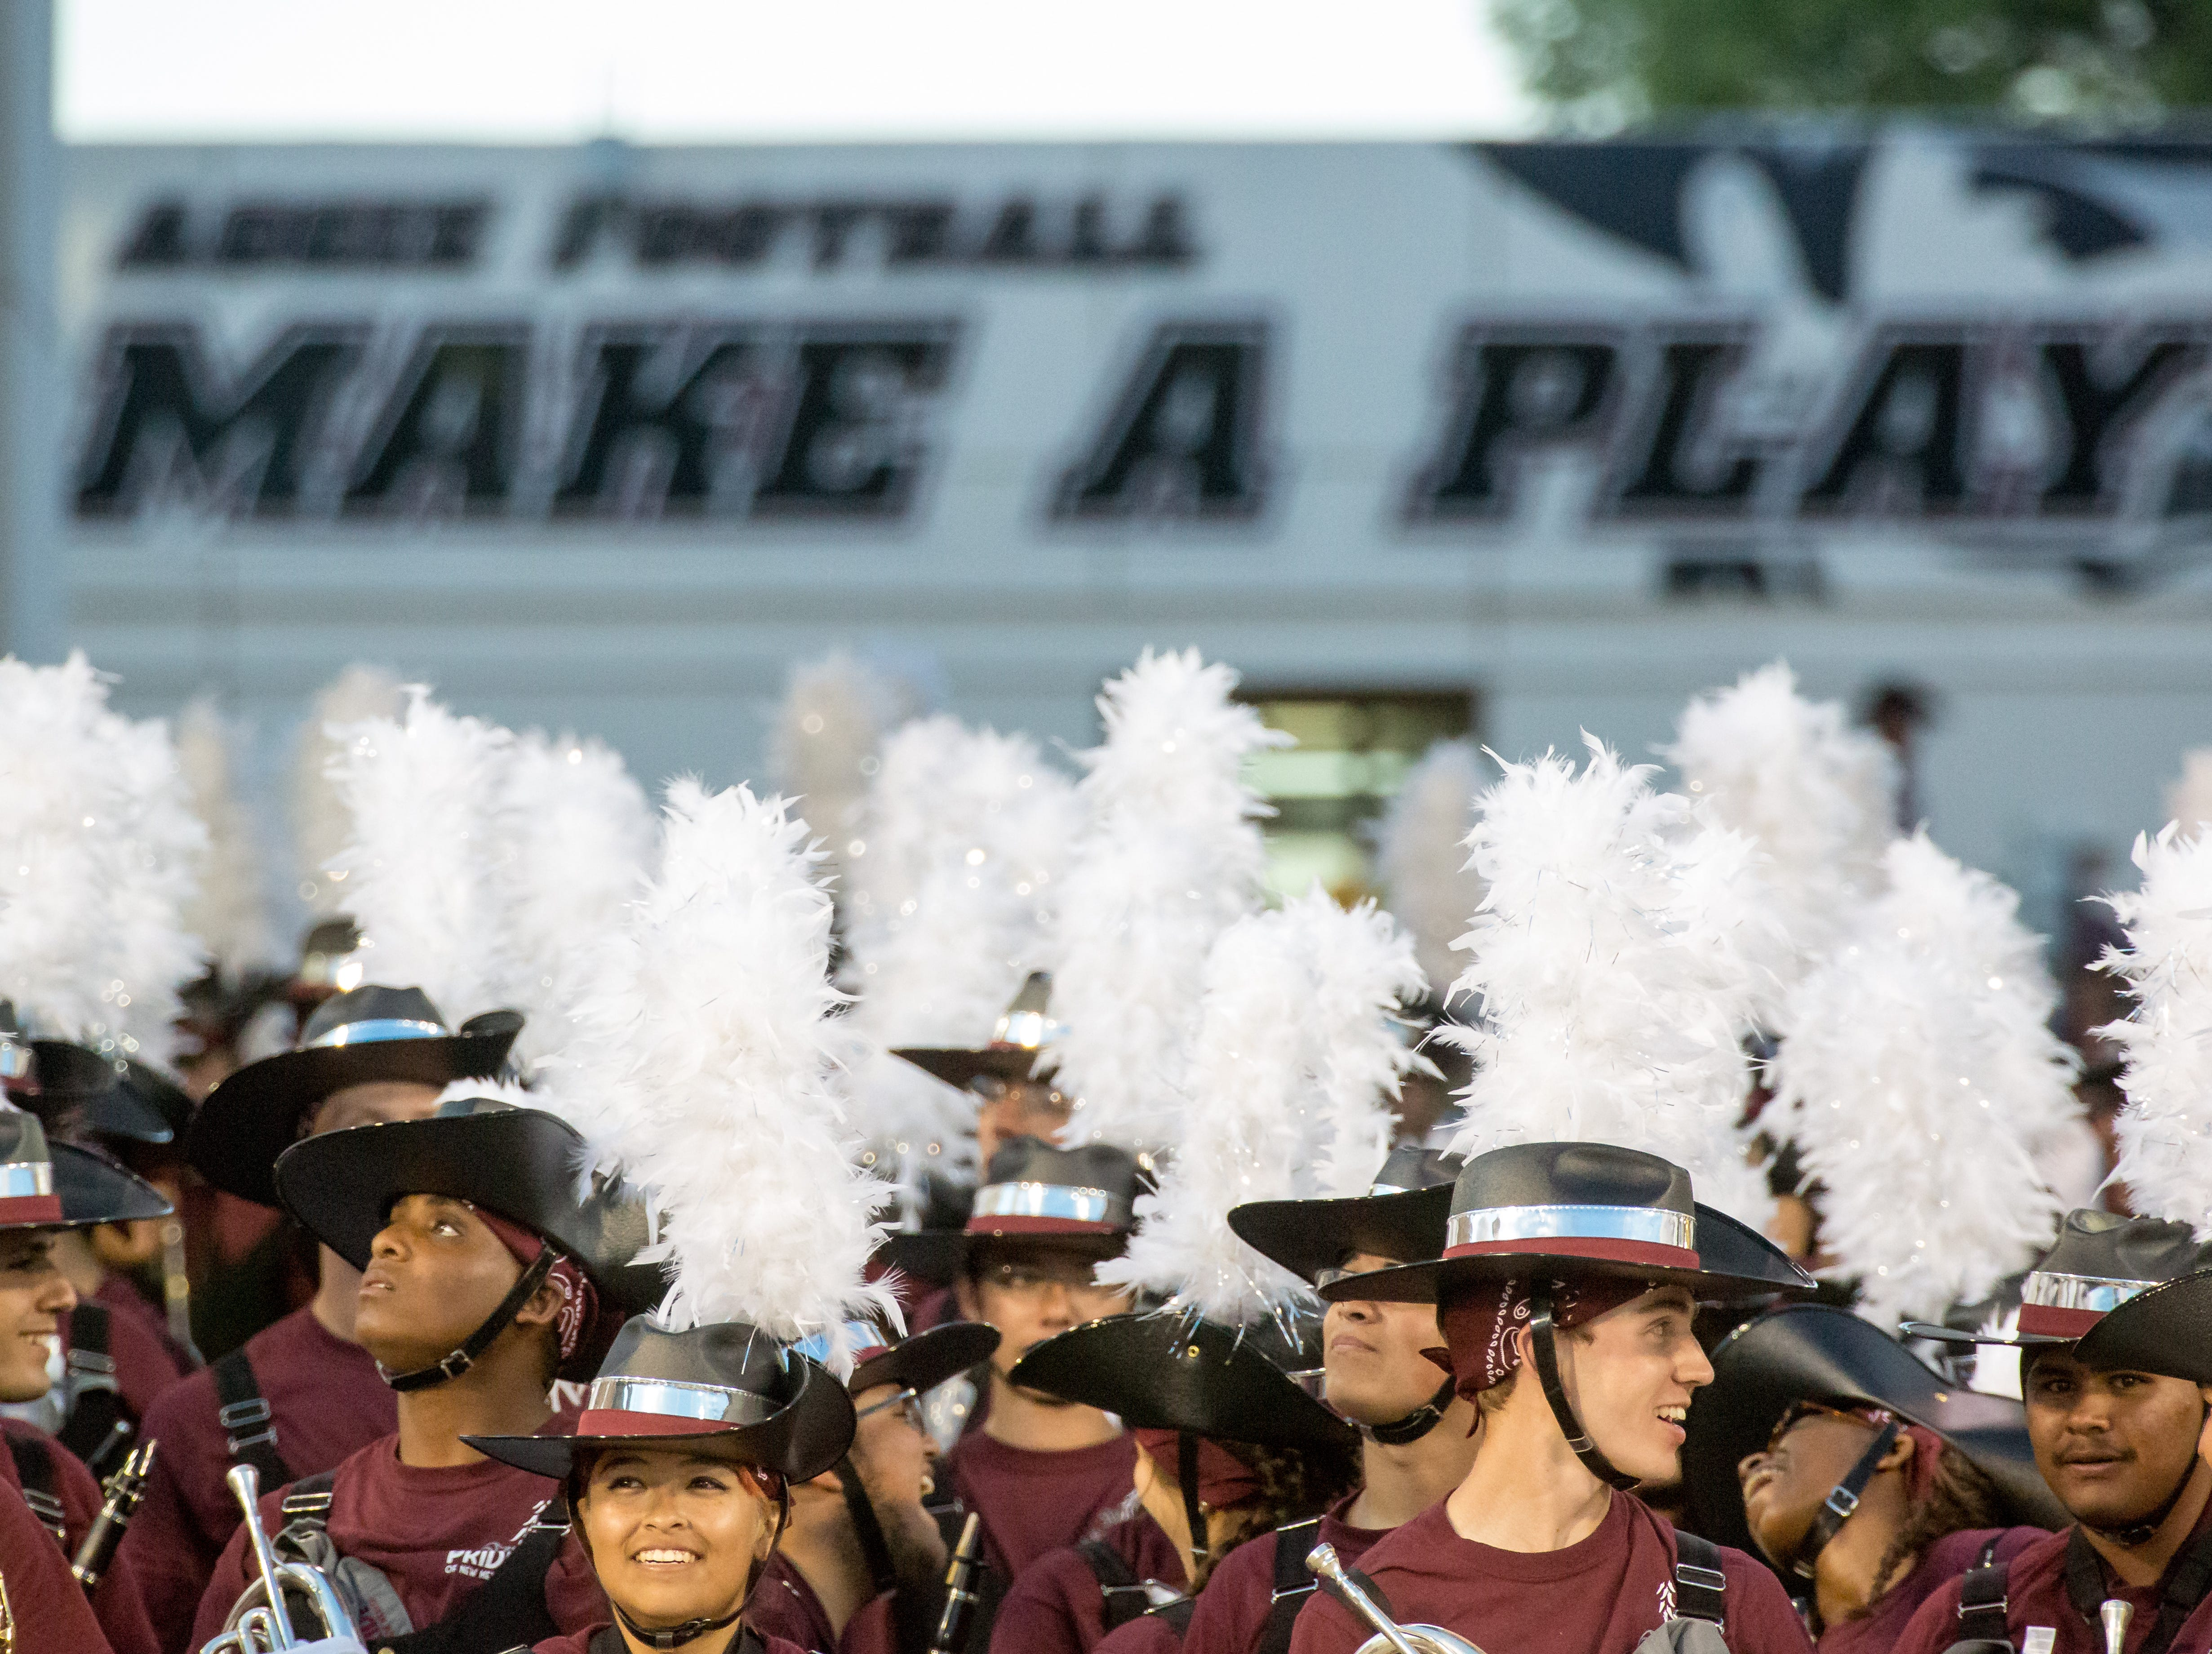 The NMSU band prepares to take the field on Saturday, August 25, 2018, during the NMSU/Wyoming game at the Aggie Memorial Stadium.